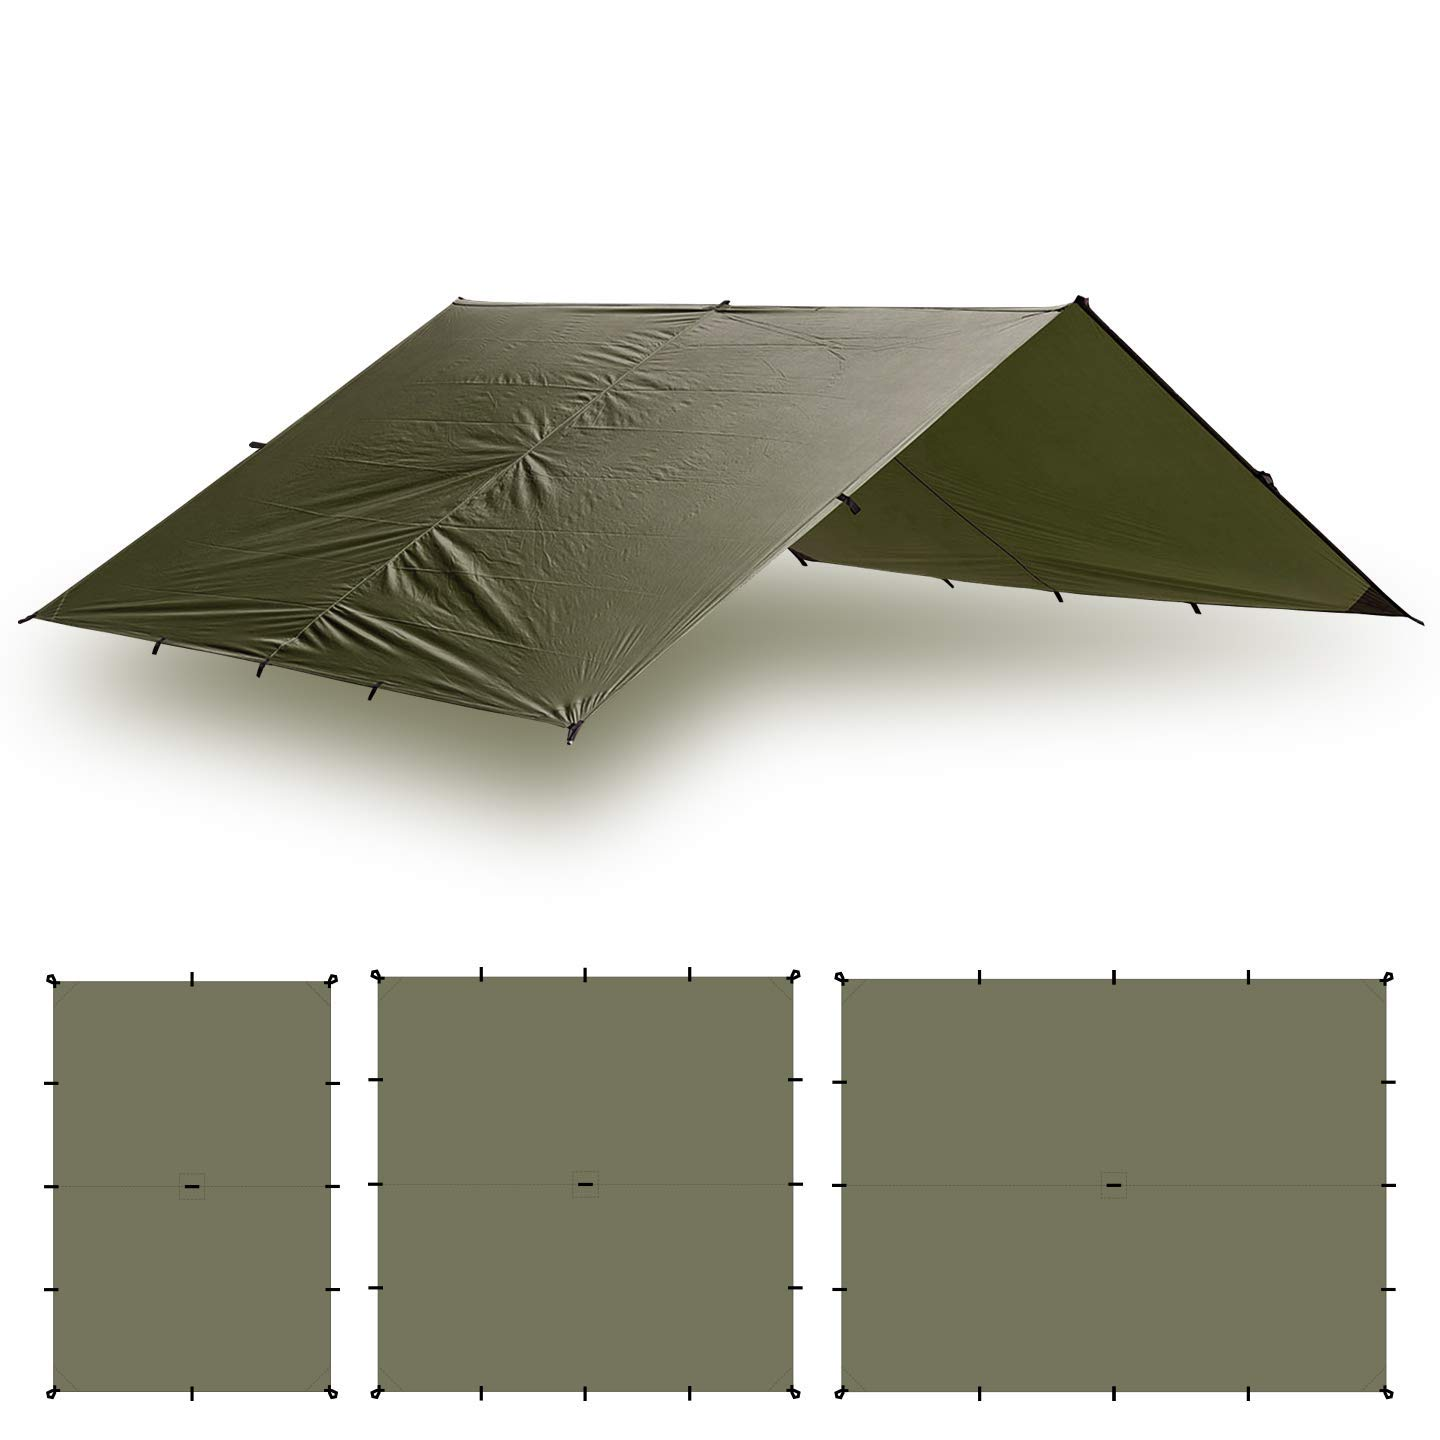 Aqua Quest Guide Tarp - 100% Waterproof Ultralight Ripstop SIL Nylon Backpacking Rain Fly - 10x10 Olive Drab by Aqua Quest